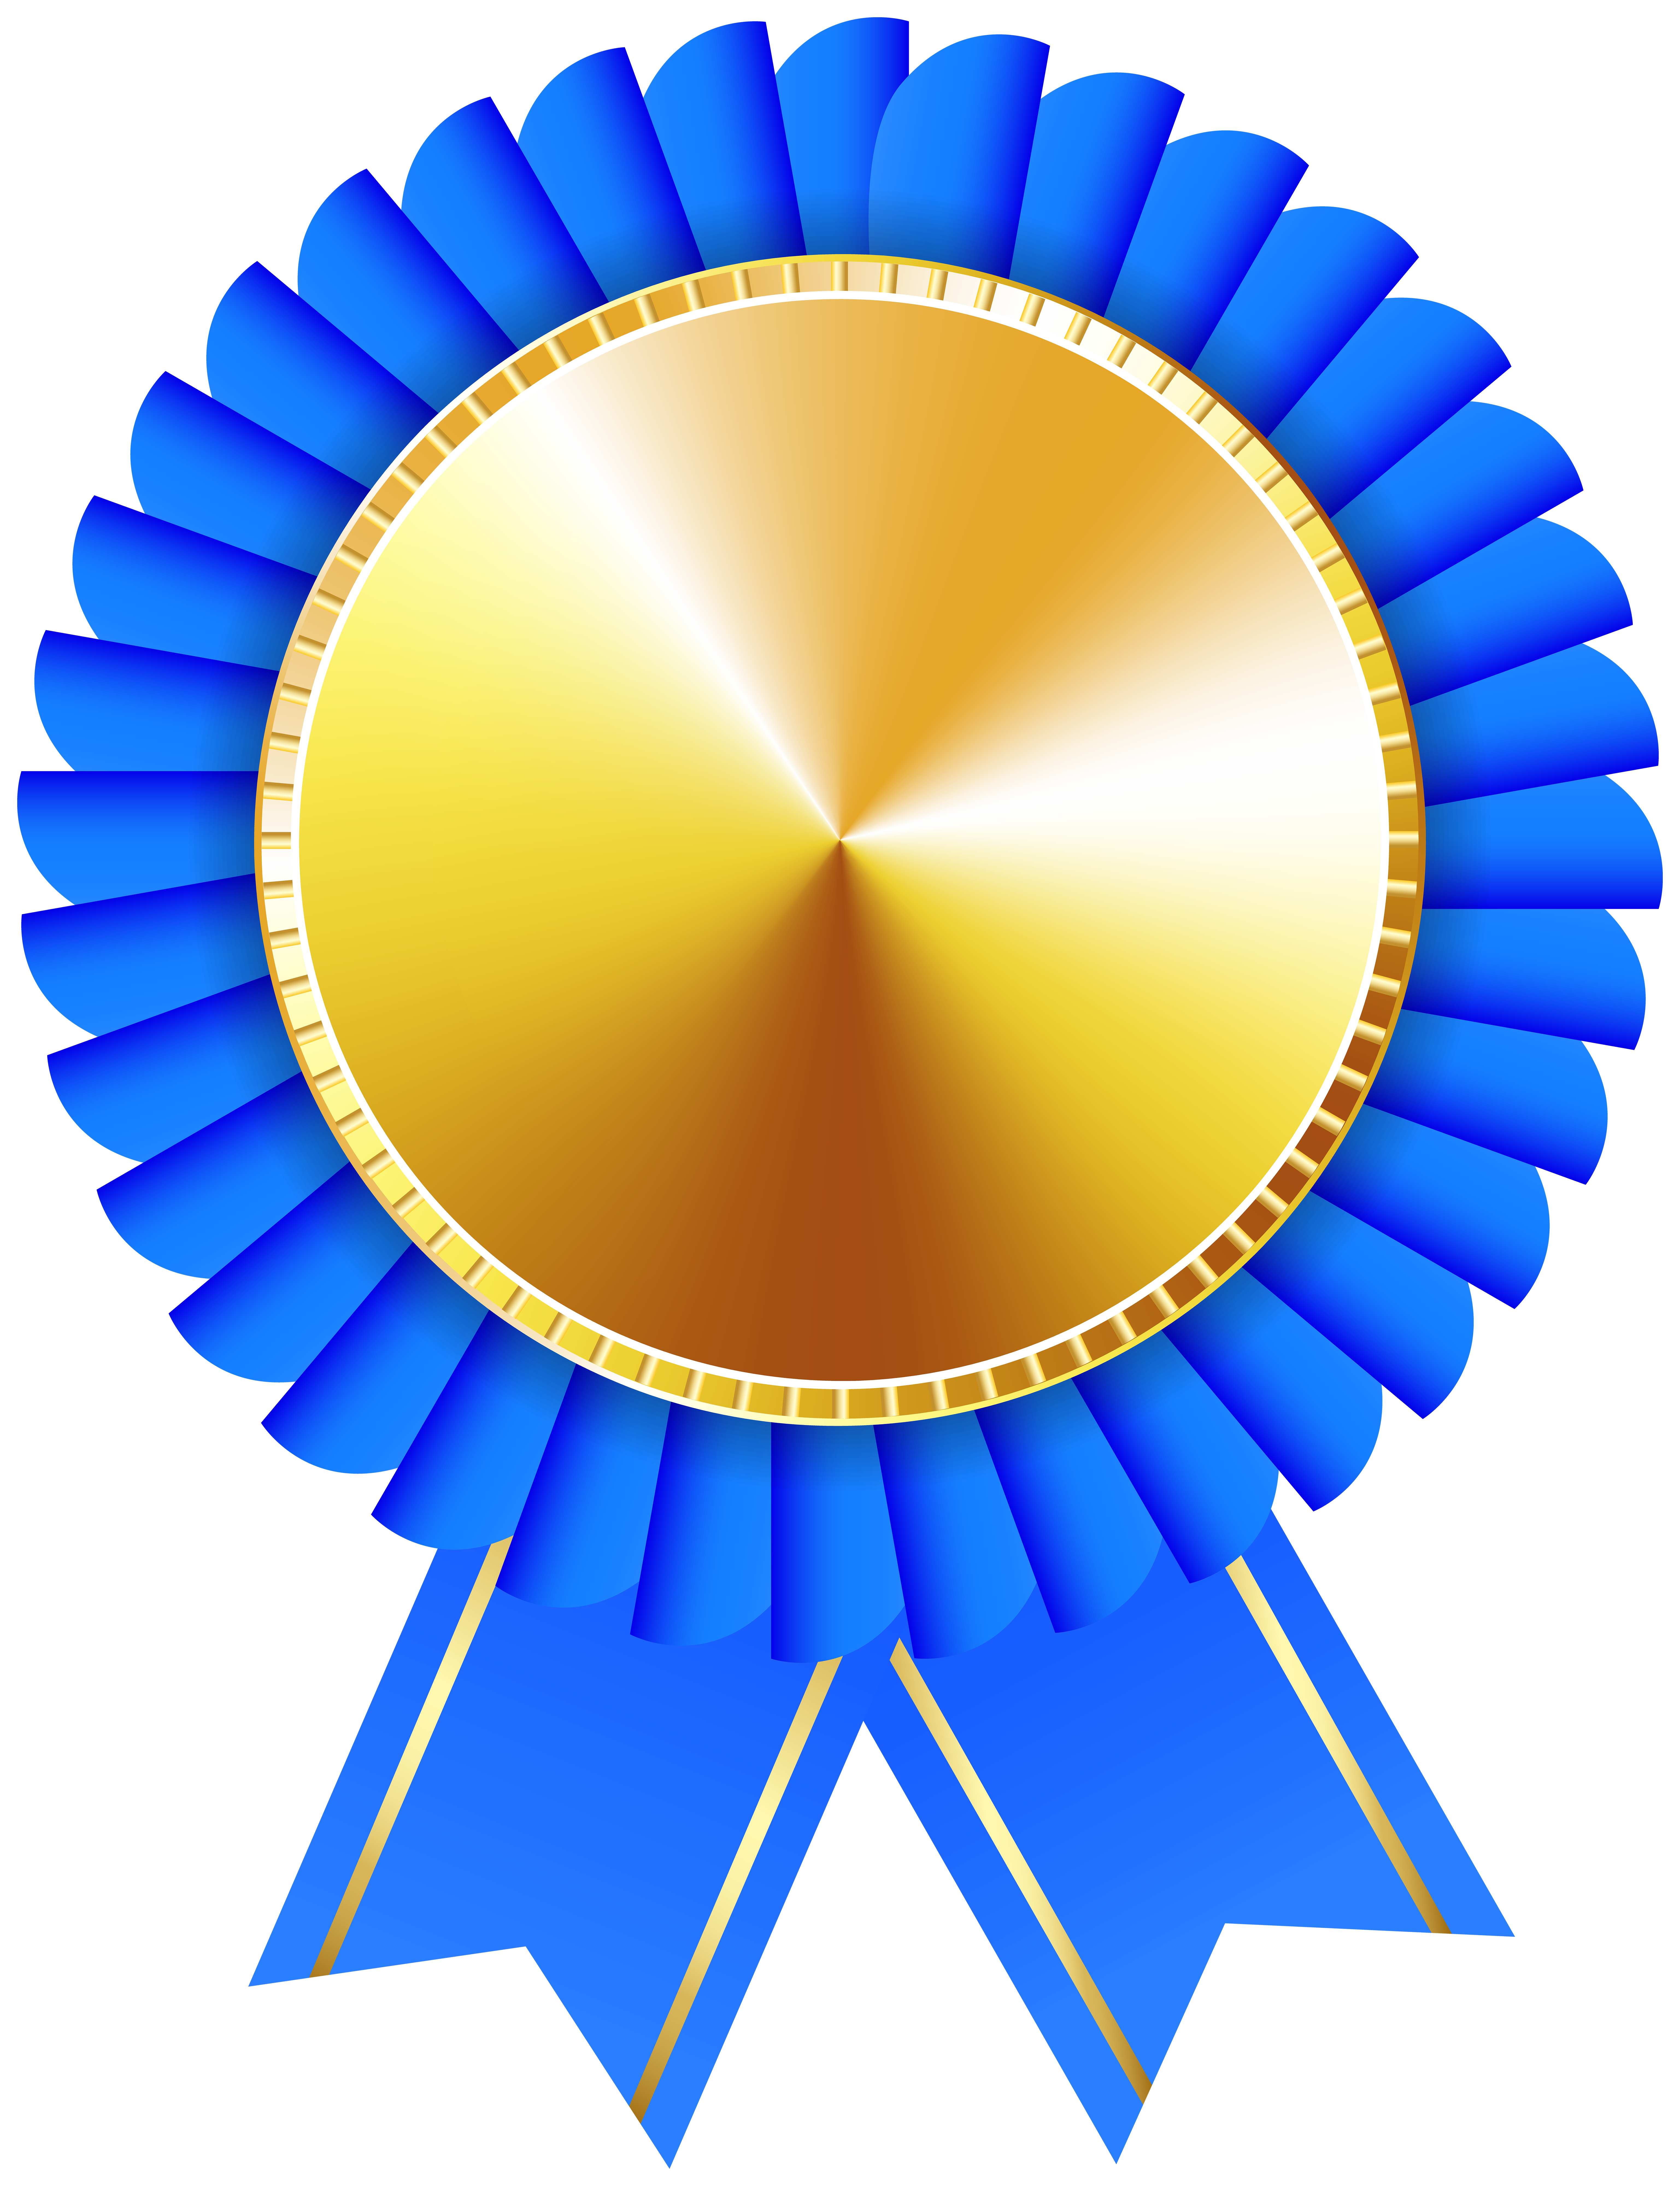 Rosette Ribbon Blue Gold Transparent Image.